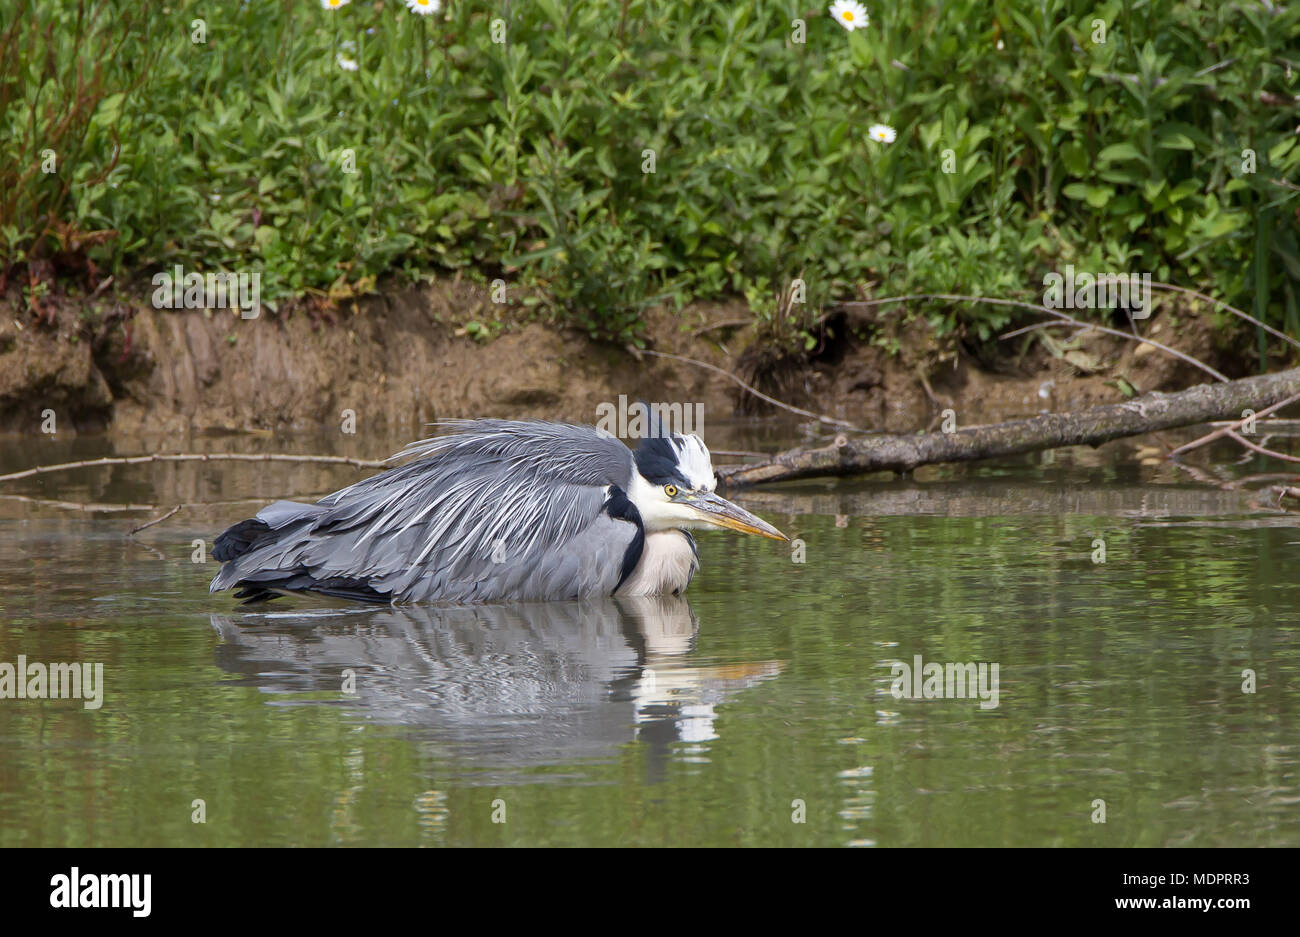 Detailed close up, side view of single adult grey heron (Ardea cinerea) crouching down, creeping stealthily through the water, hunting fish for dinner. - Stock Image